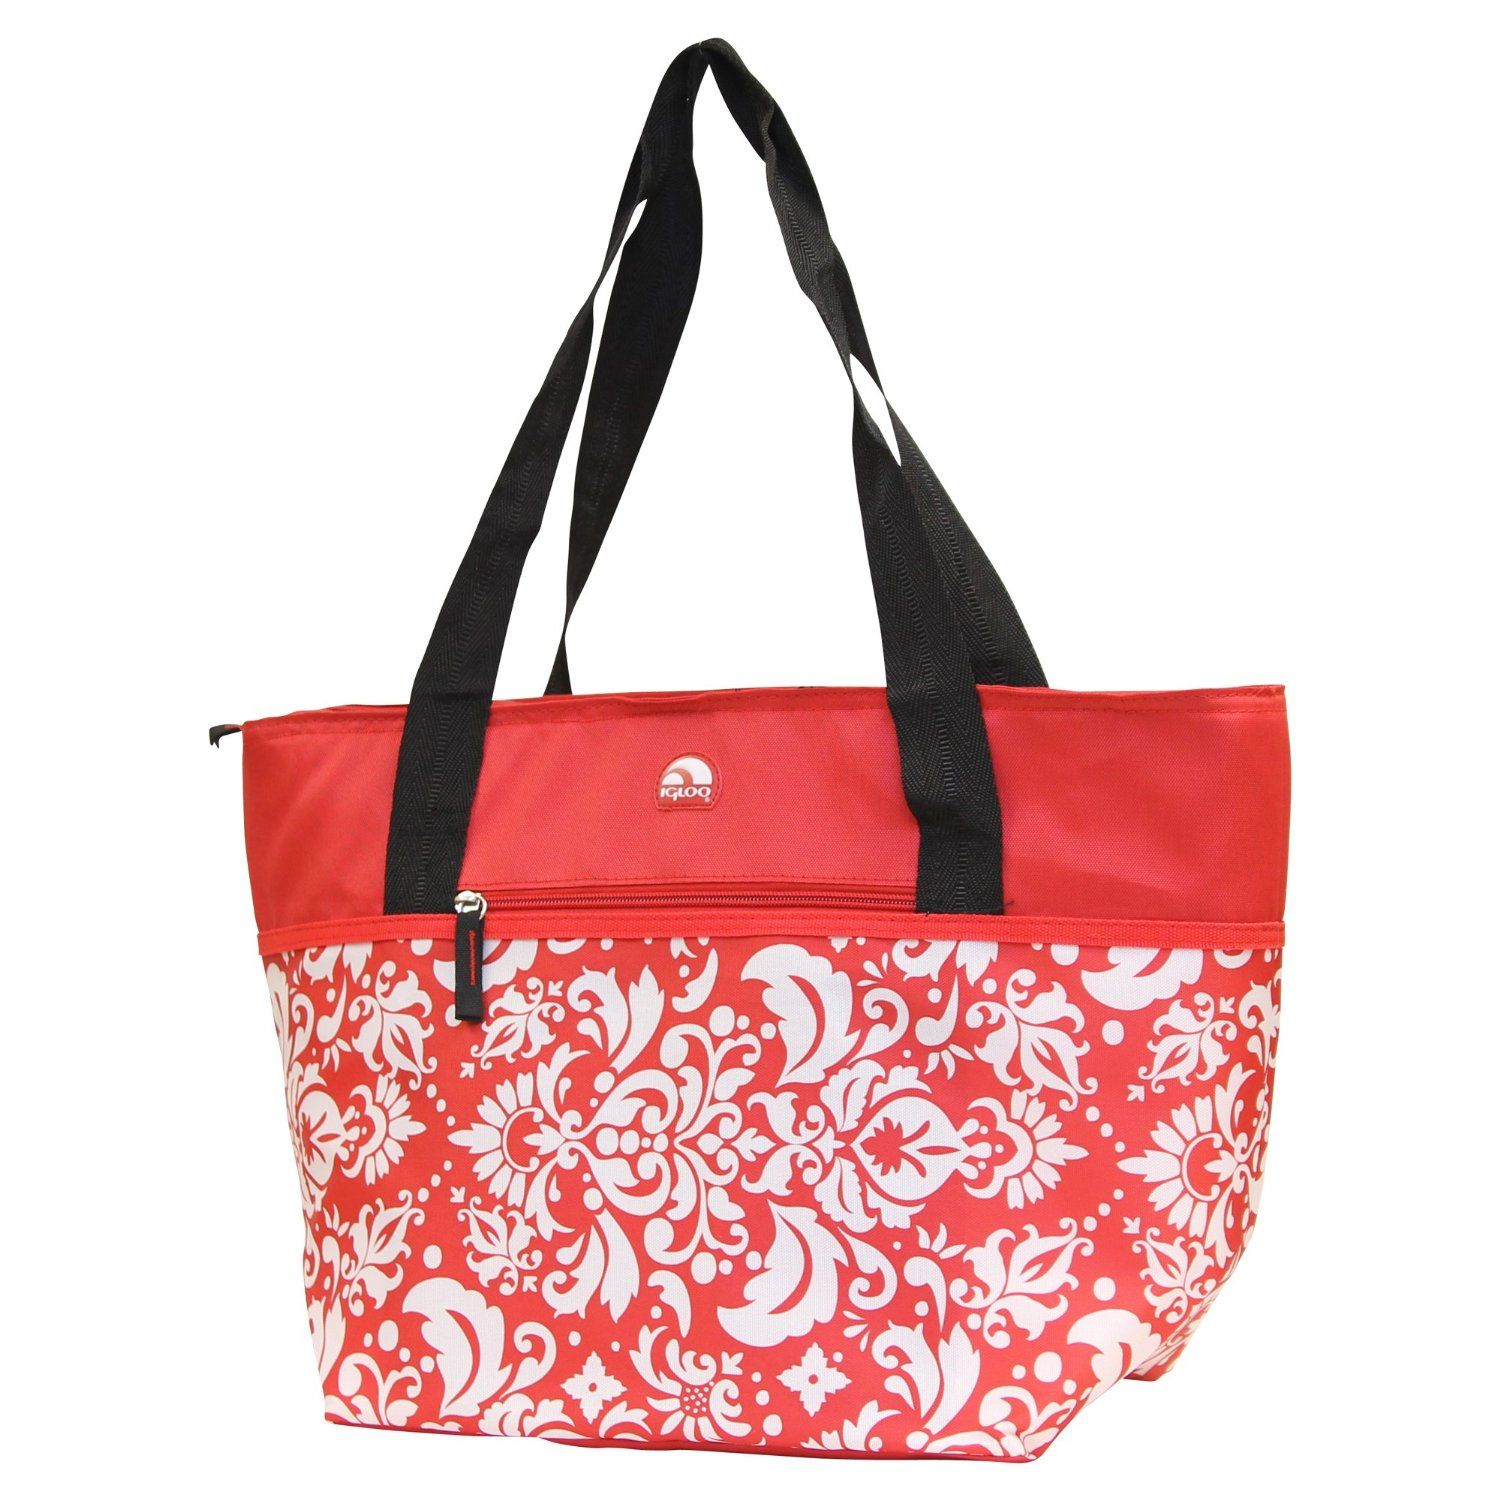 Igloo Insulated Shopper Cooler Tote Bag. Igloo Shopper